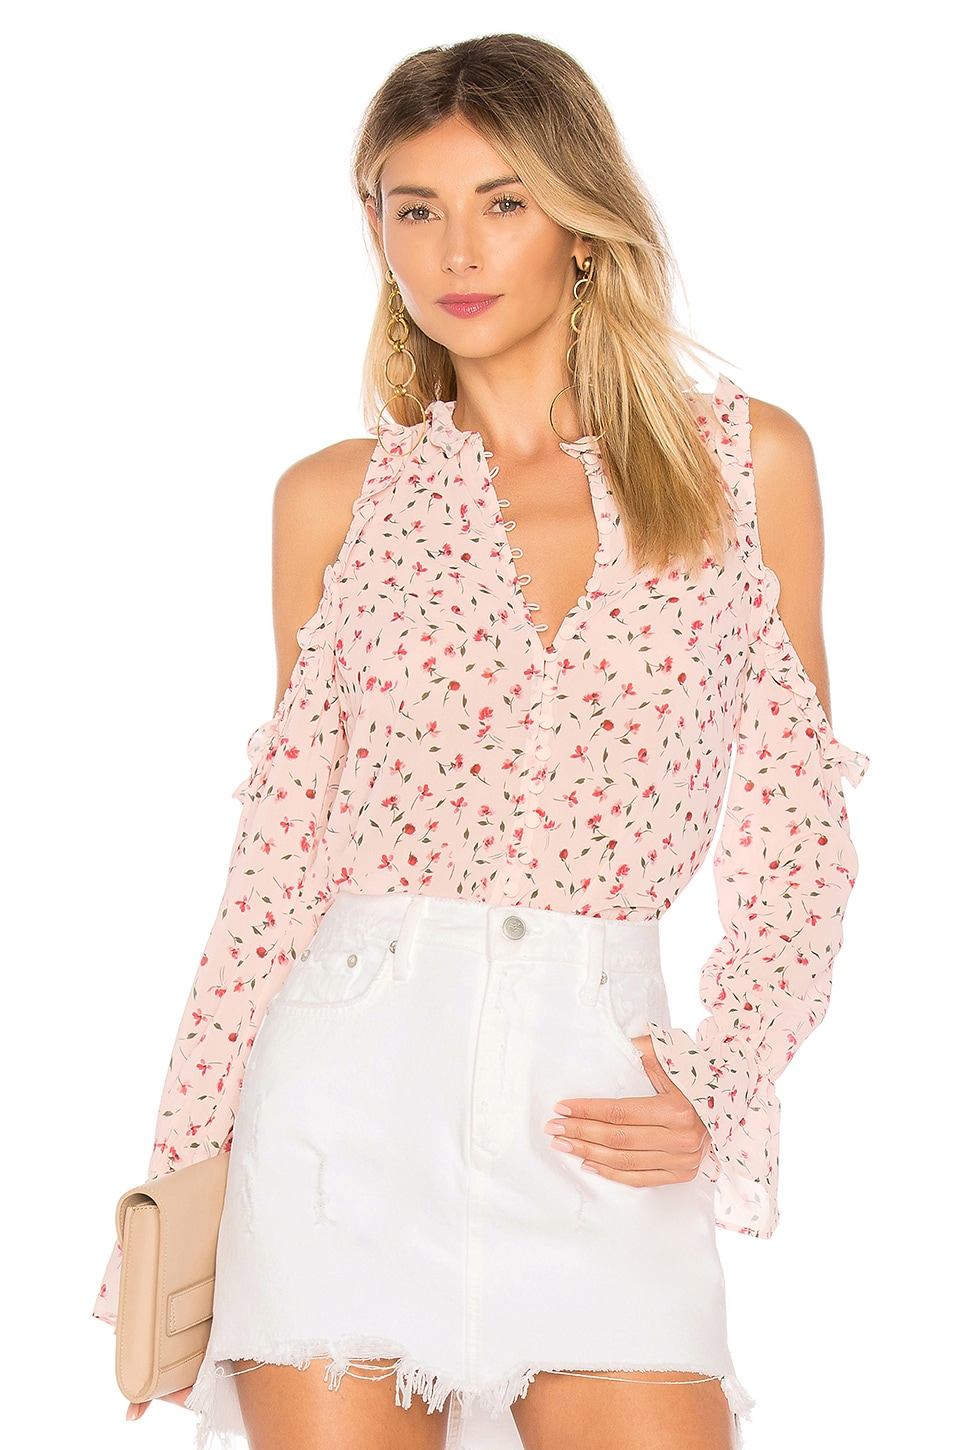 L'Academie The Bell Button Up Top in Amber Floral